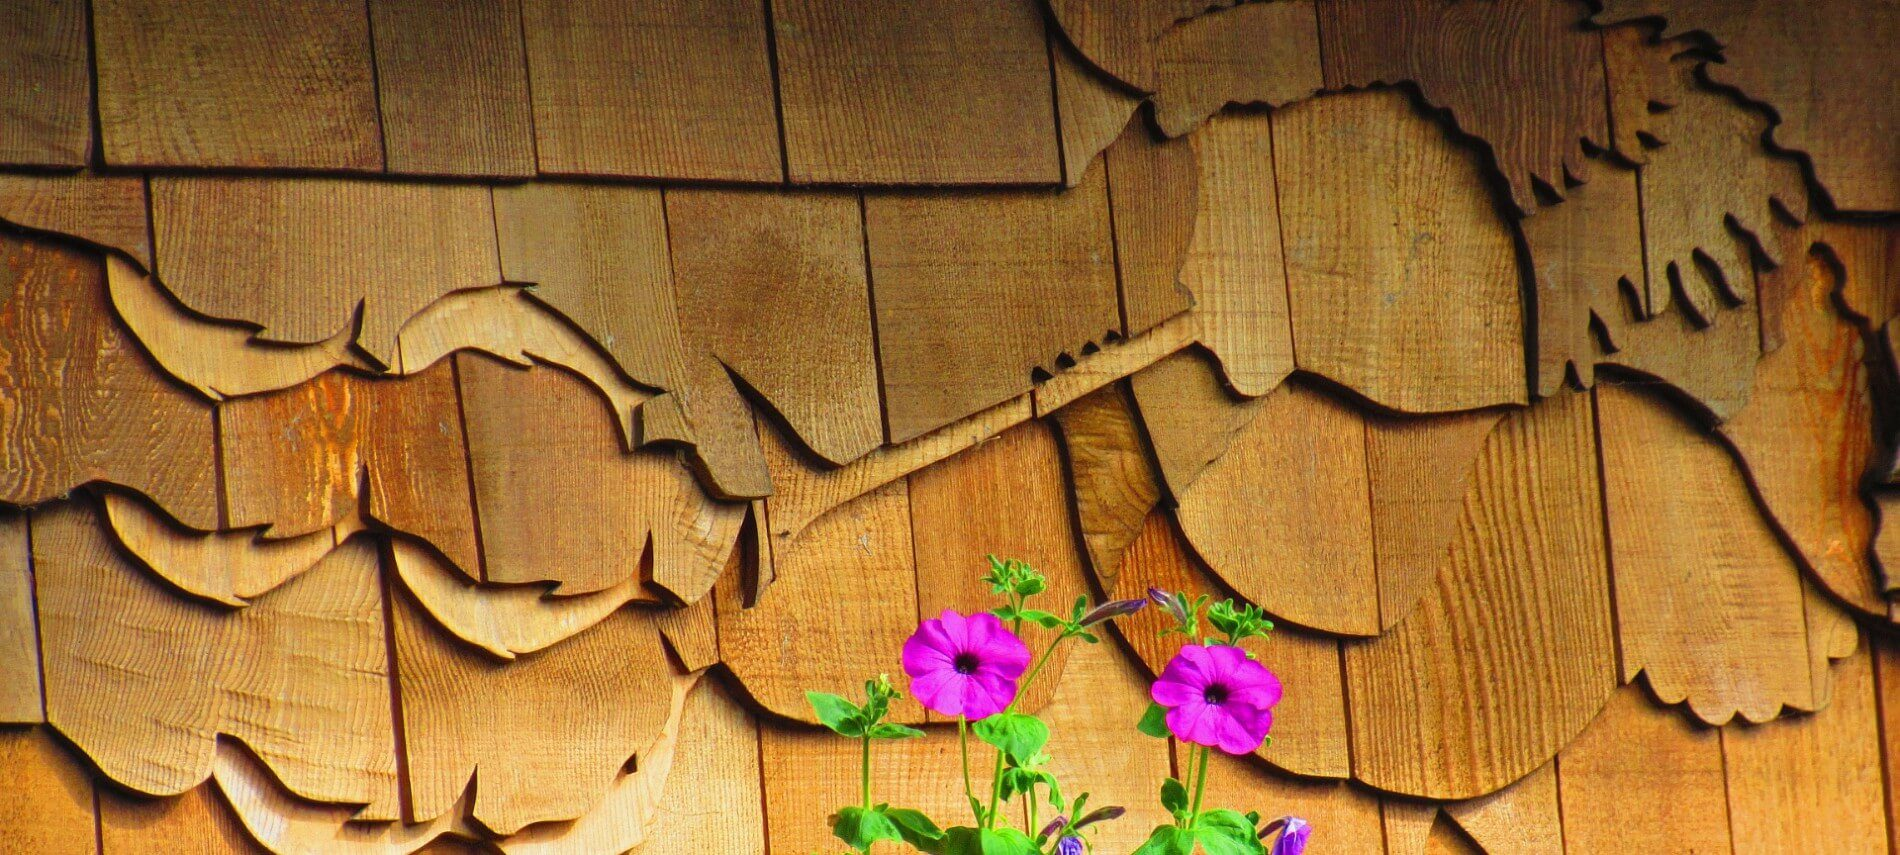 Side of a cabin with brown shingles cut into the shape of a woman blowing a horn with purple flowers